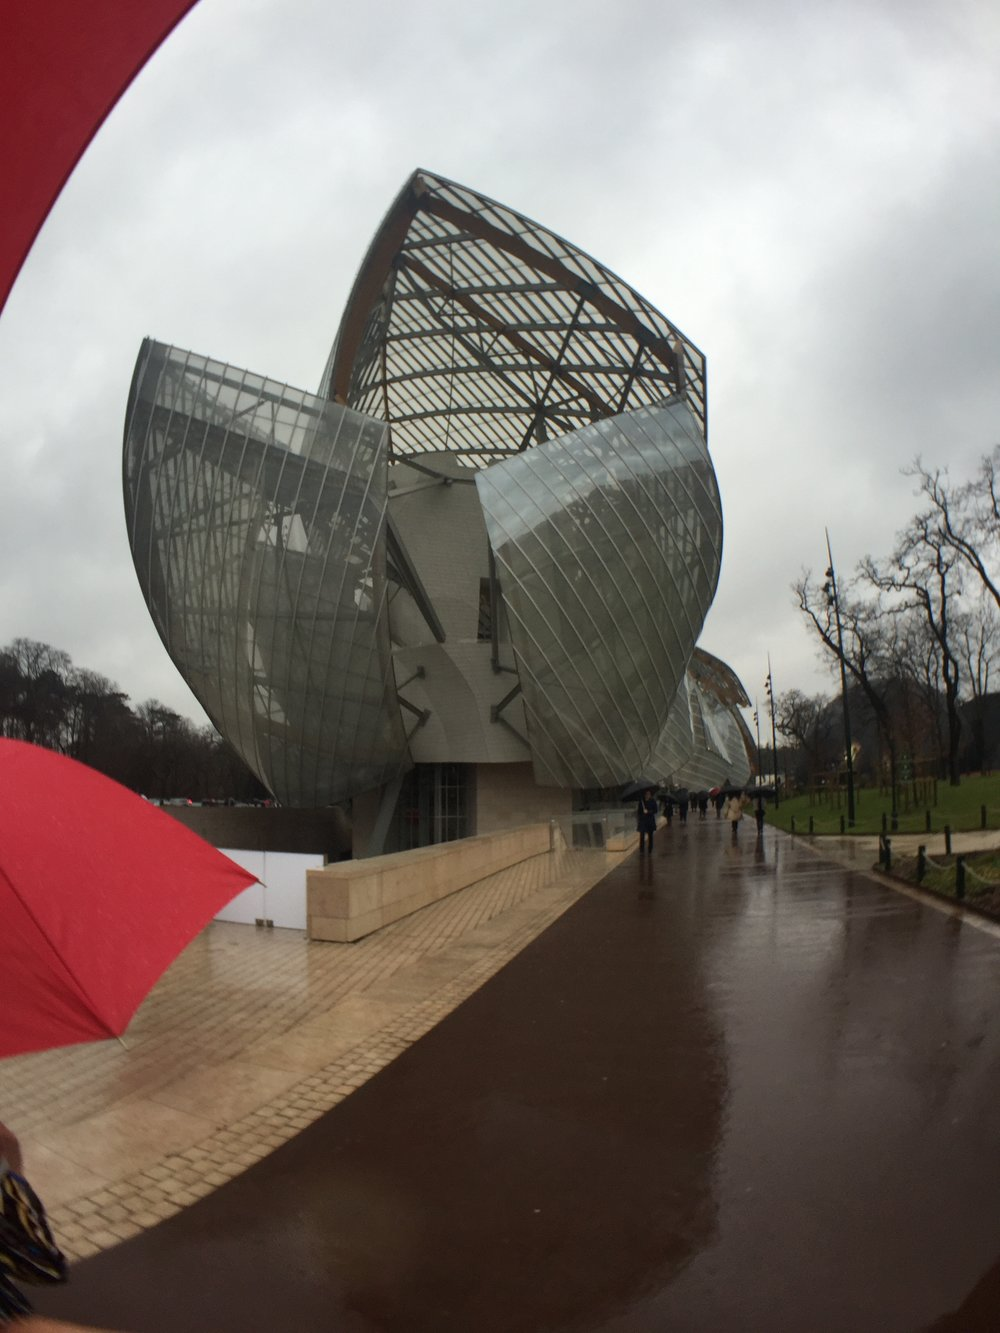 The show was held in geometric tents outside the Louis Vuitton Foundation building. It's an art museum and cultural center designed by architect Frank Gehry.